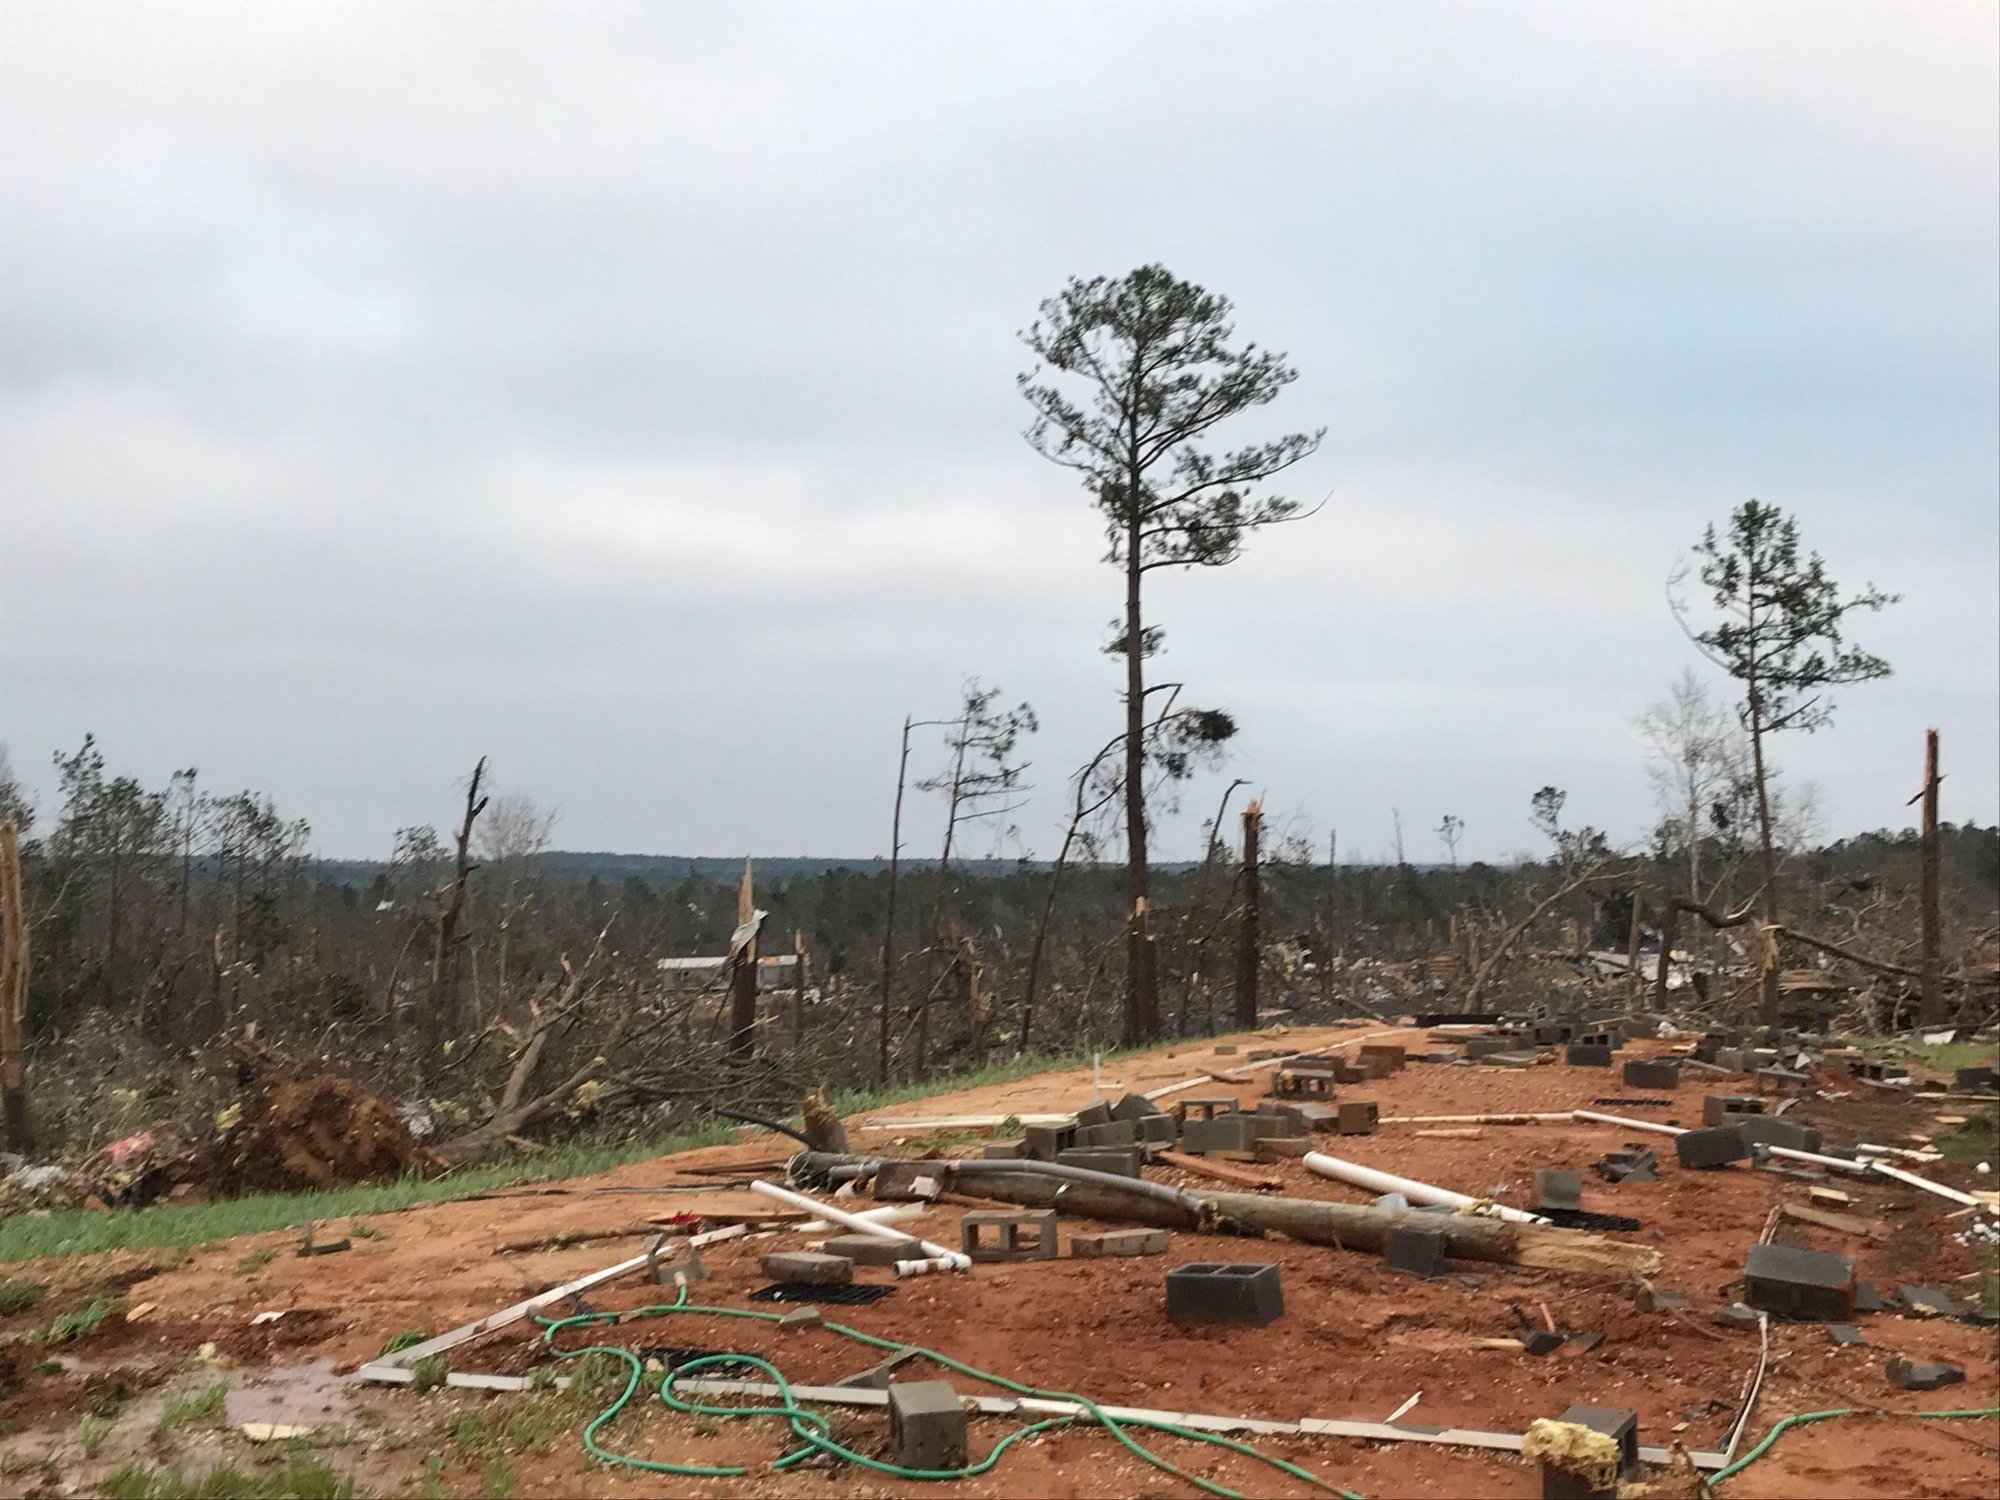 The National Weather Service recorded EF-3 damage in southern Lee County. That classification means the damage was severe, with winds of 136 to 165 miles per hour.